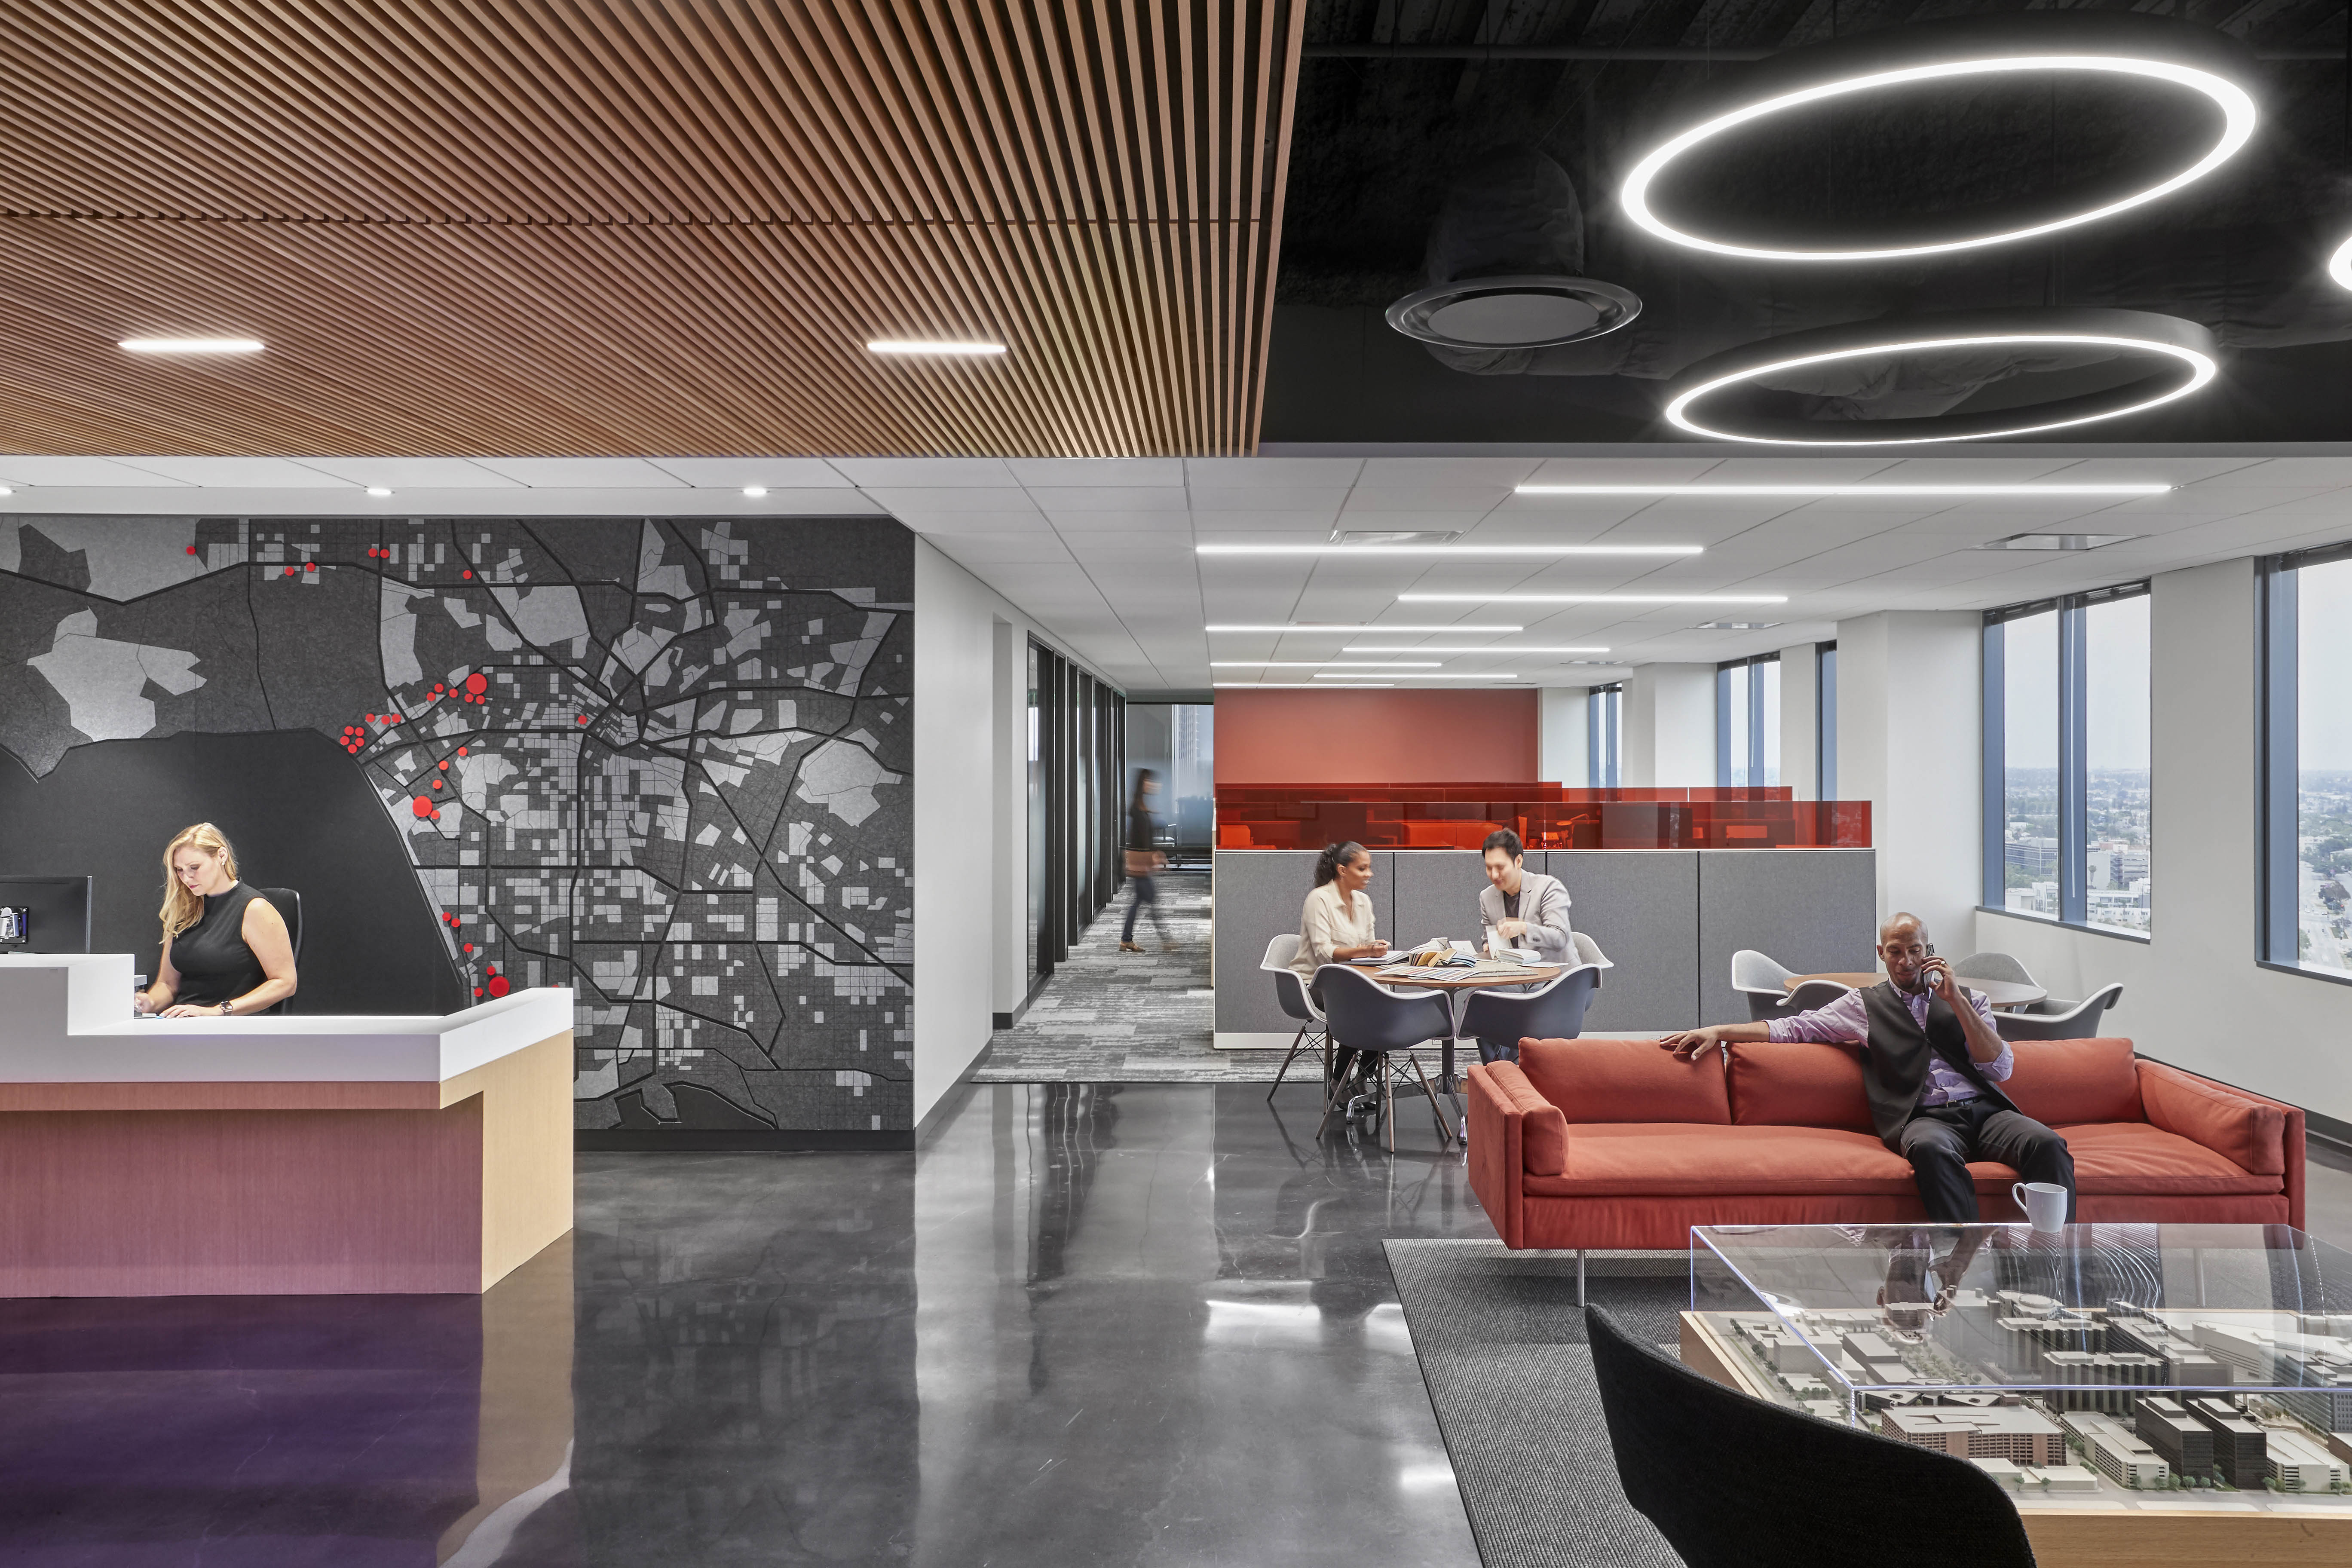 Interactive Work Spaces Fosters Connectivity and Collaboration at Cedars-Sinai 6500 Wilshire